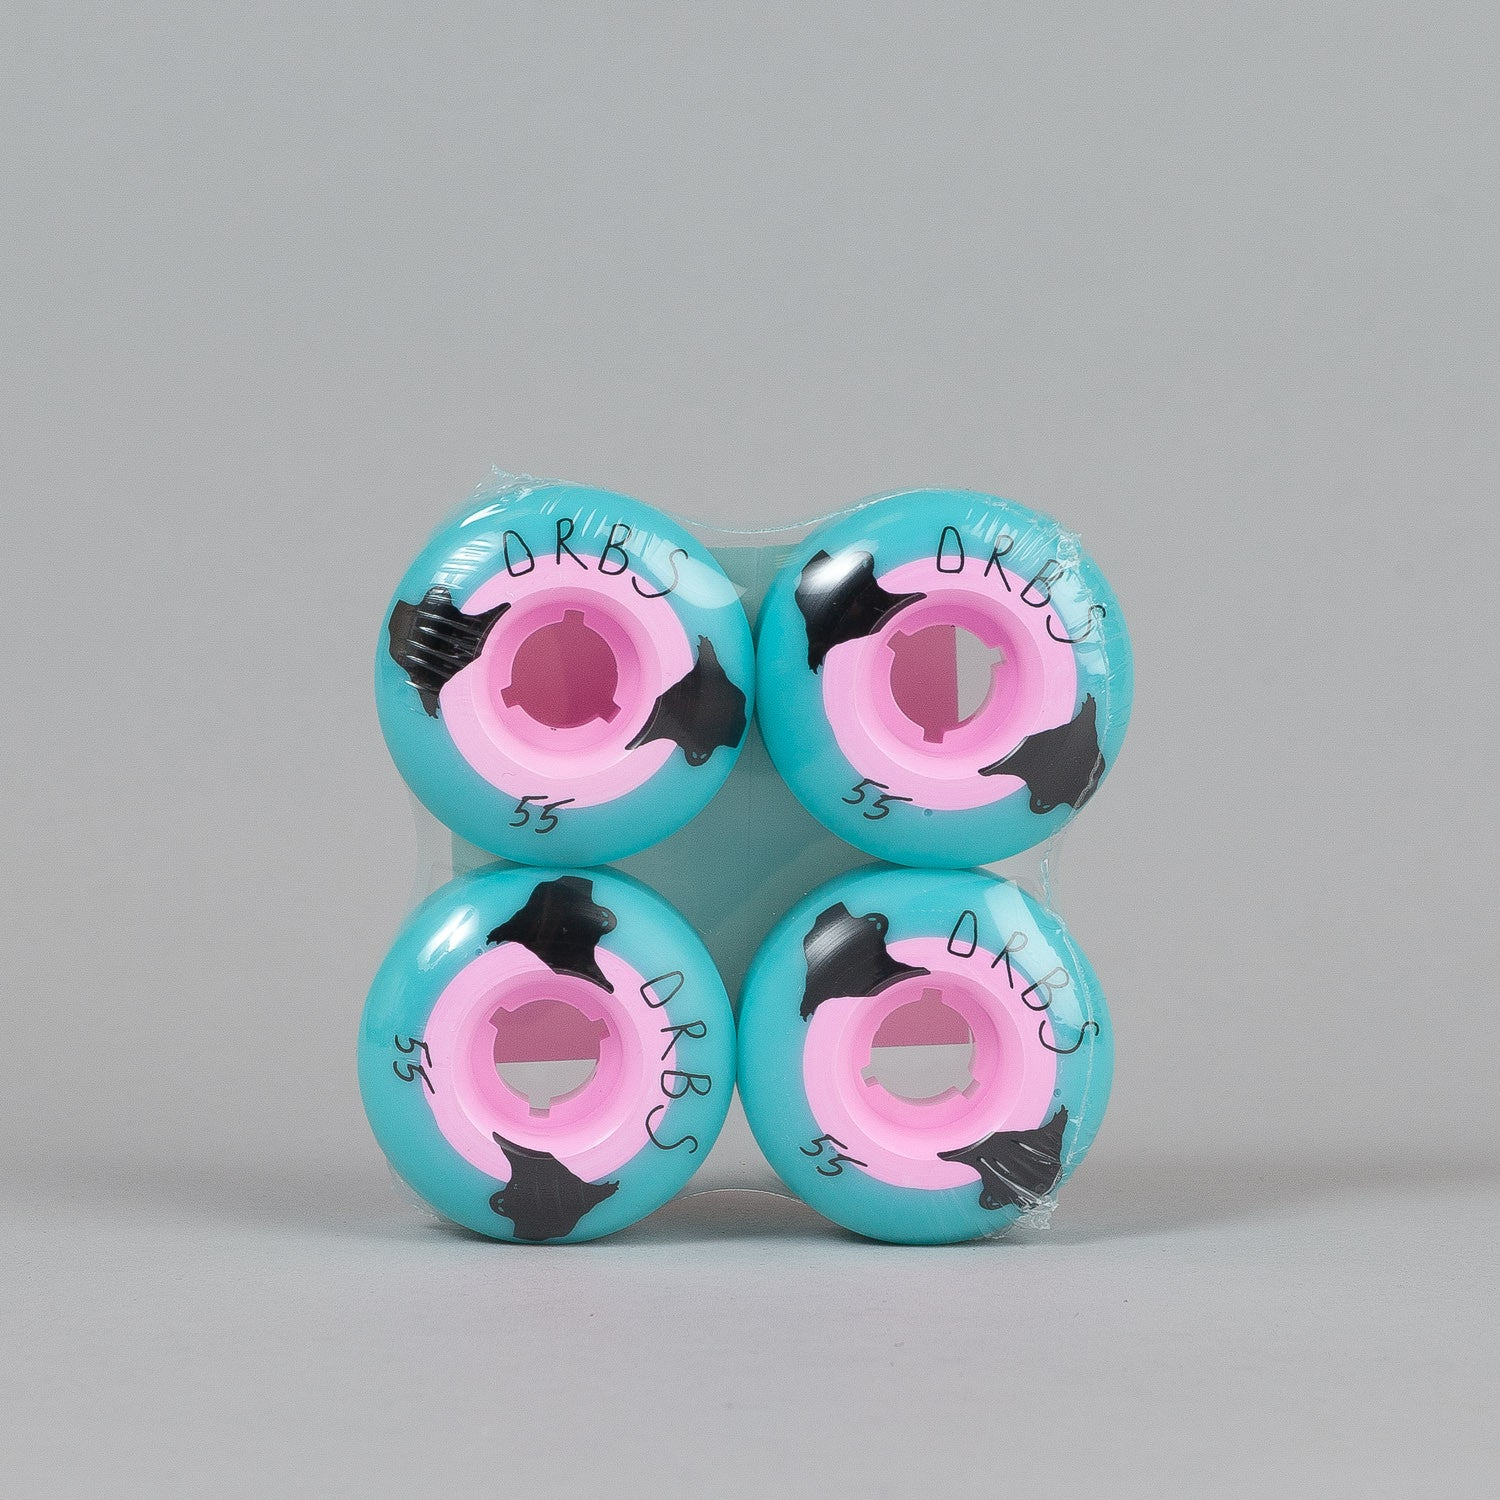 Welcome Orbs Poltergeist Wheels Blue / Pink 55mm